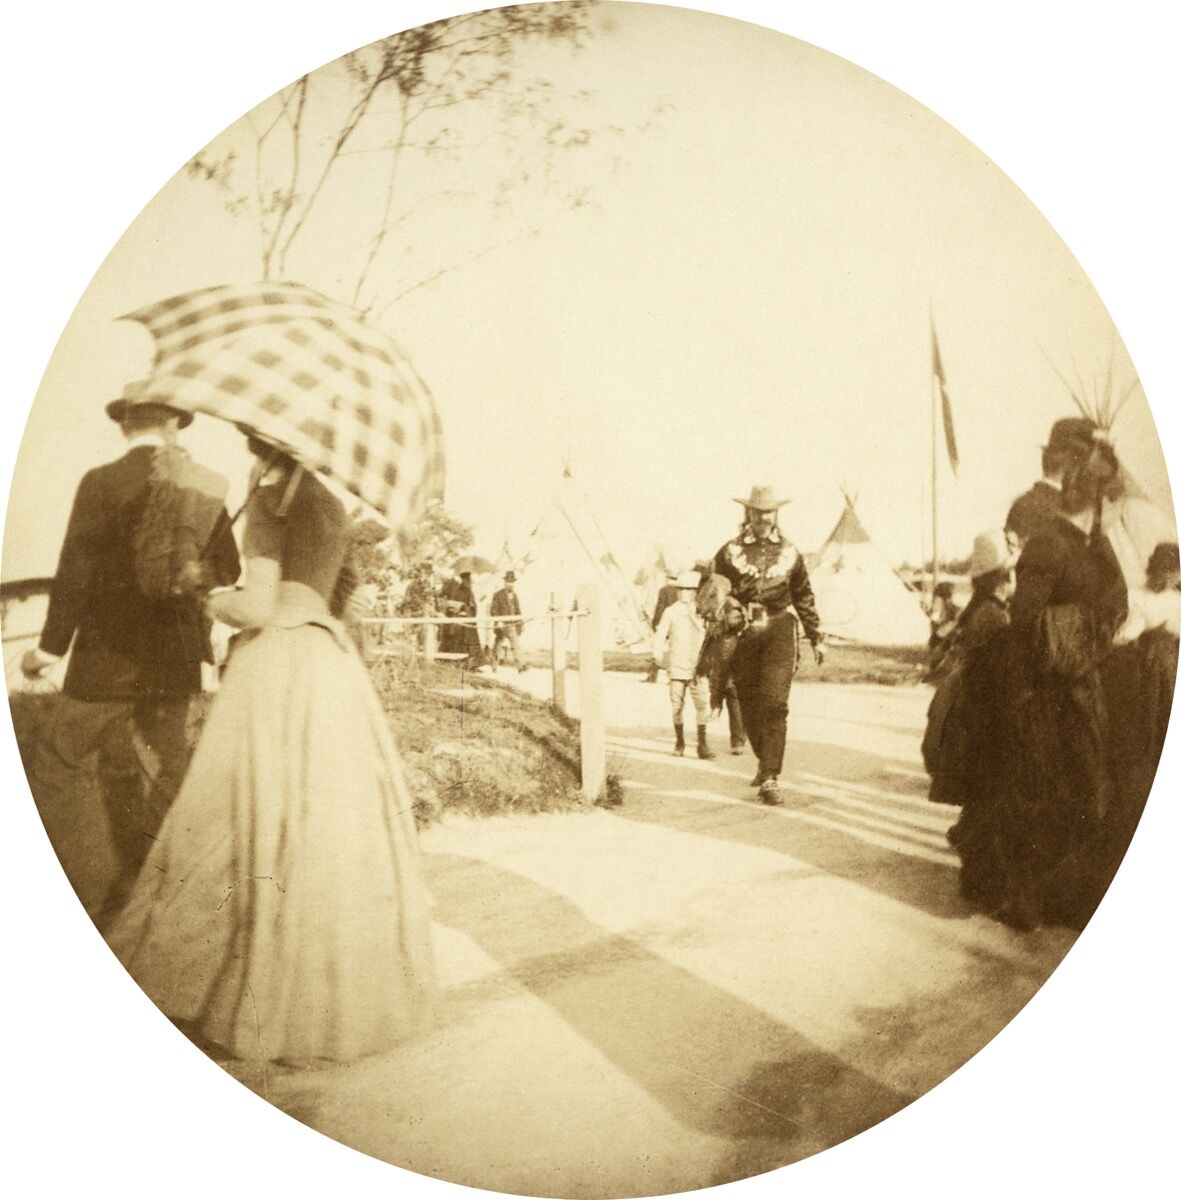 Buffalo Bill at the Exposition Universelle of Paris, 1889. Photo by adoc-photos/Corbis via Getty Images.